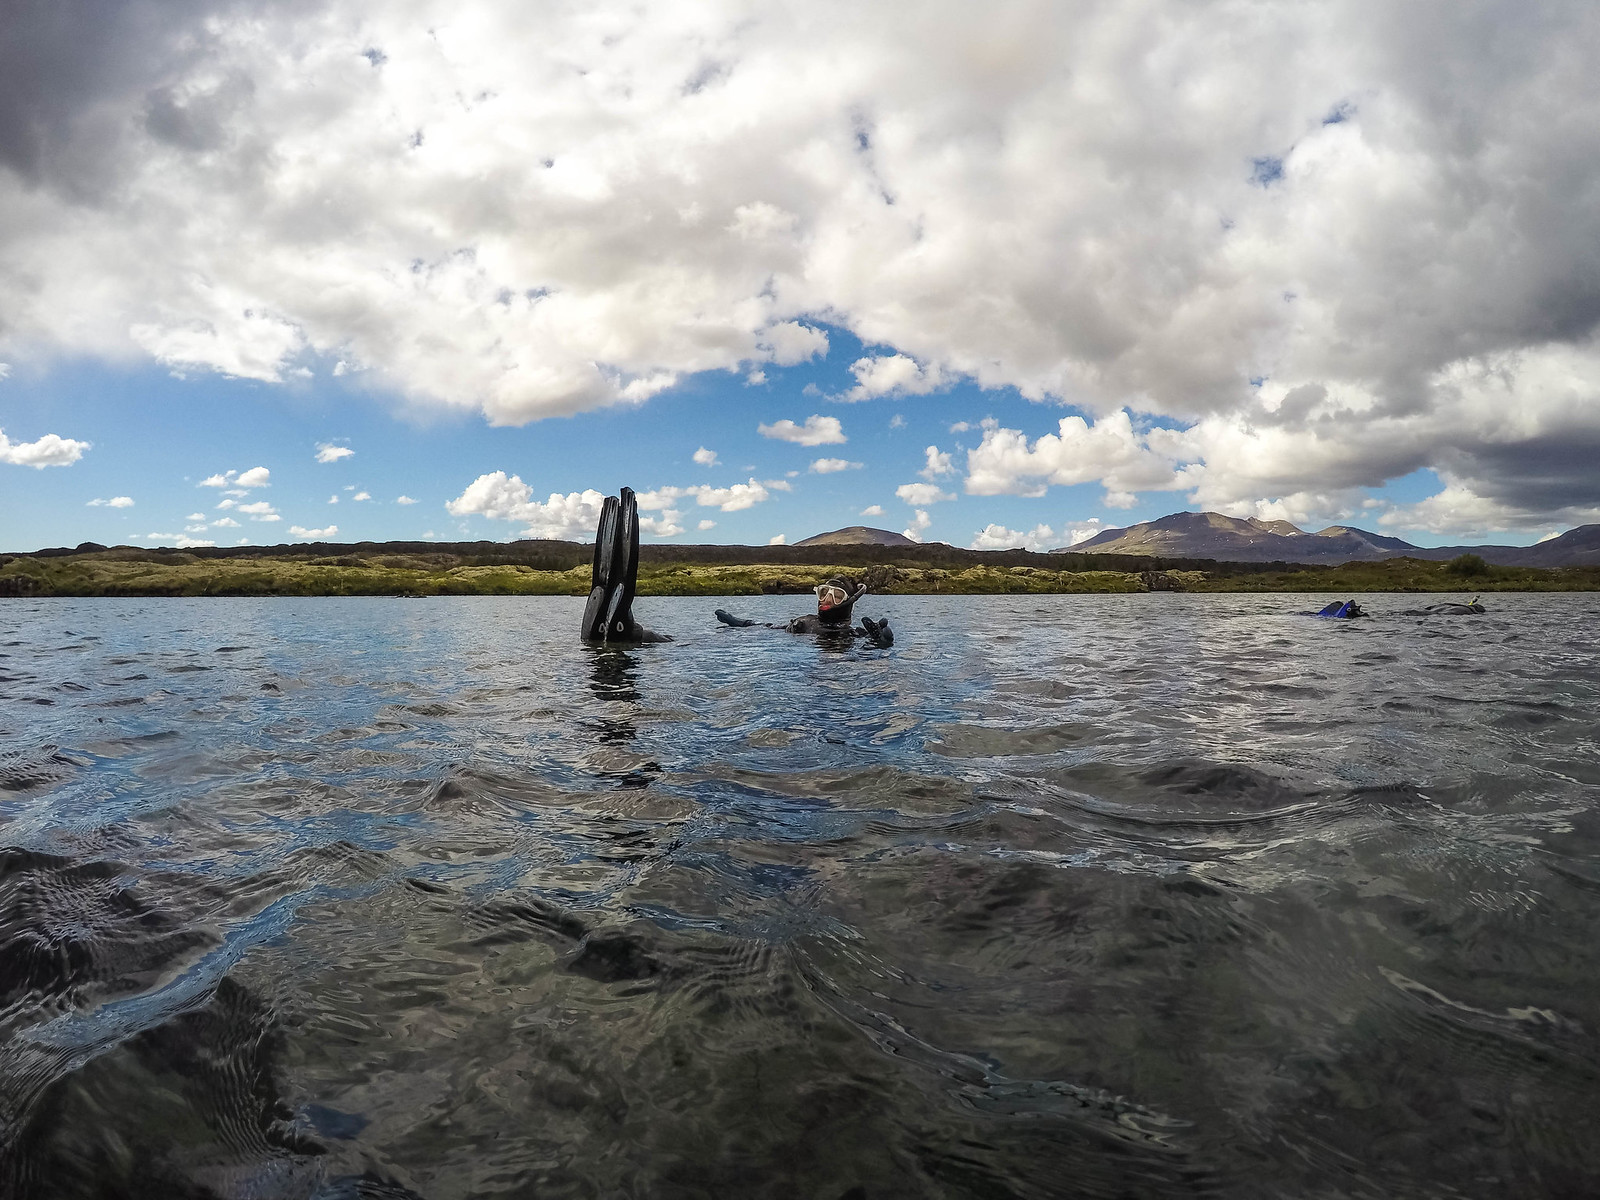 Snorkeling in Iceland's Silfra fissure